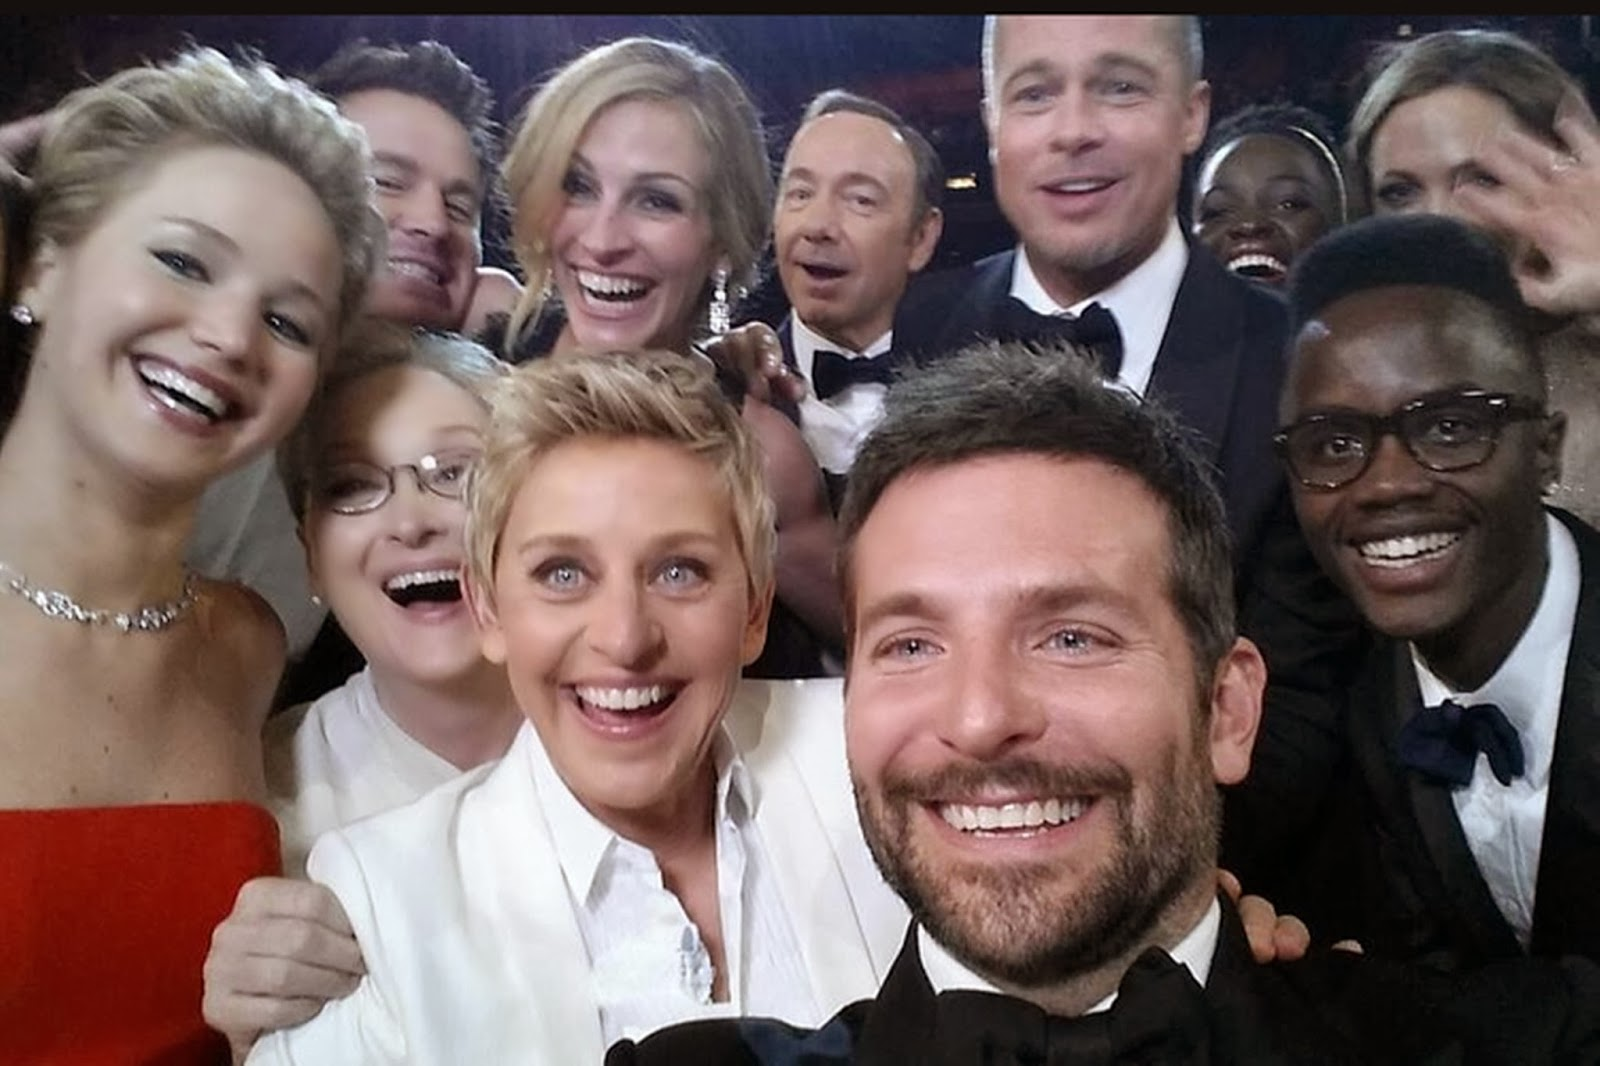 Best Selfie Ever at the Oscars 2014